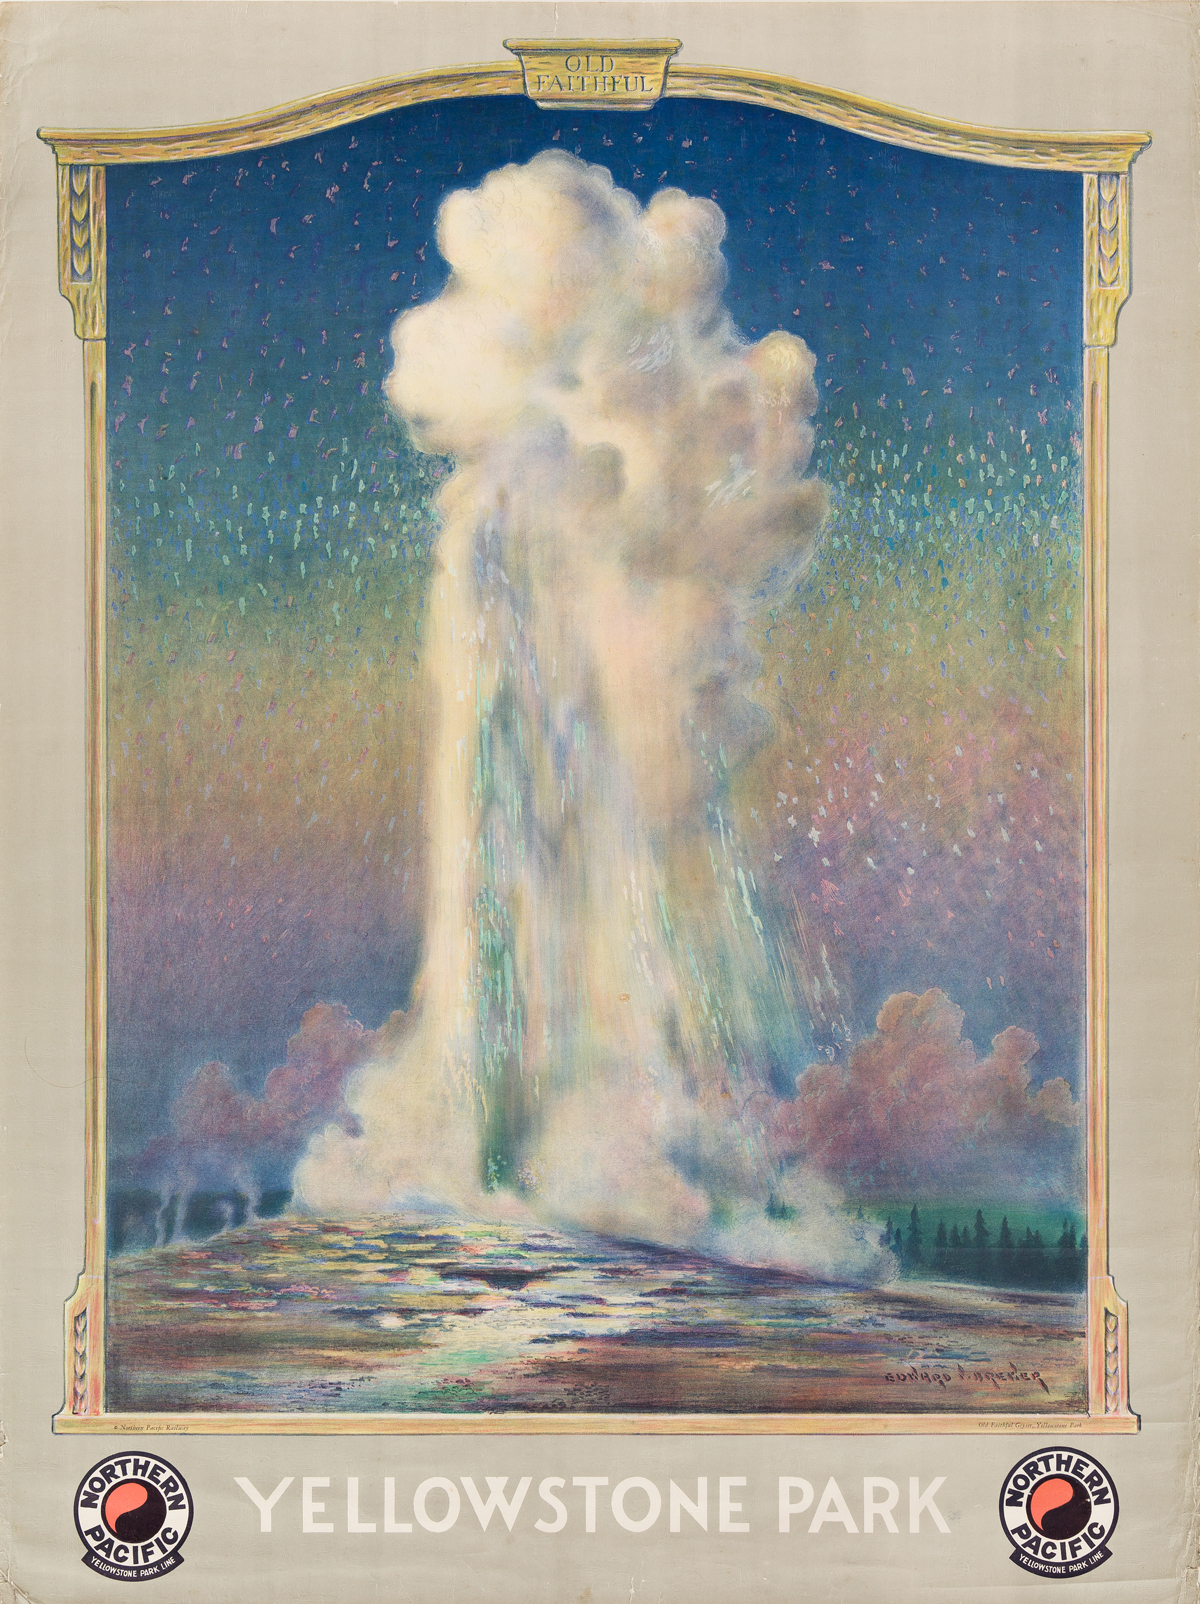 Edward Vincent Brewer (1883-1971).  YELLOWSTONE PARK / OLD FAITHFUL / NORTHERN PACIFIC. Circa 1930.